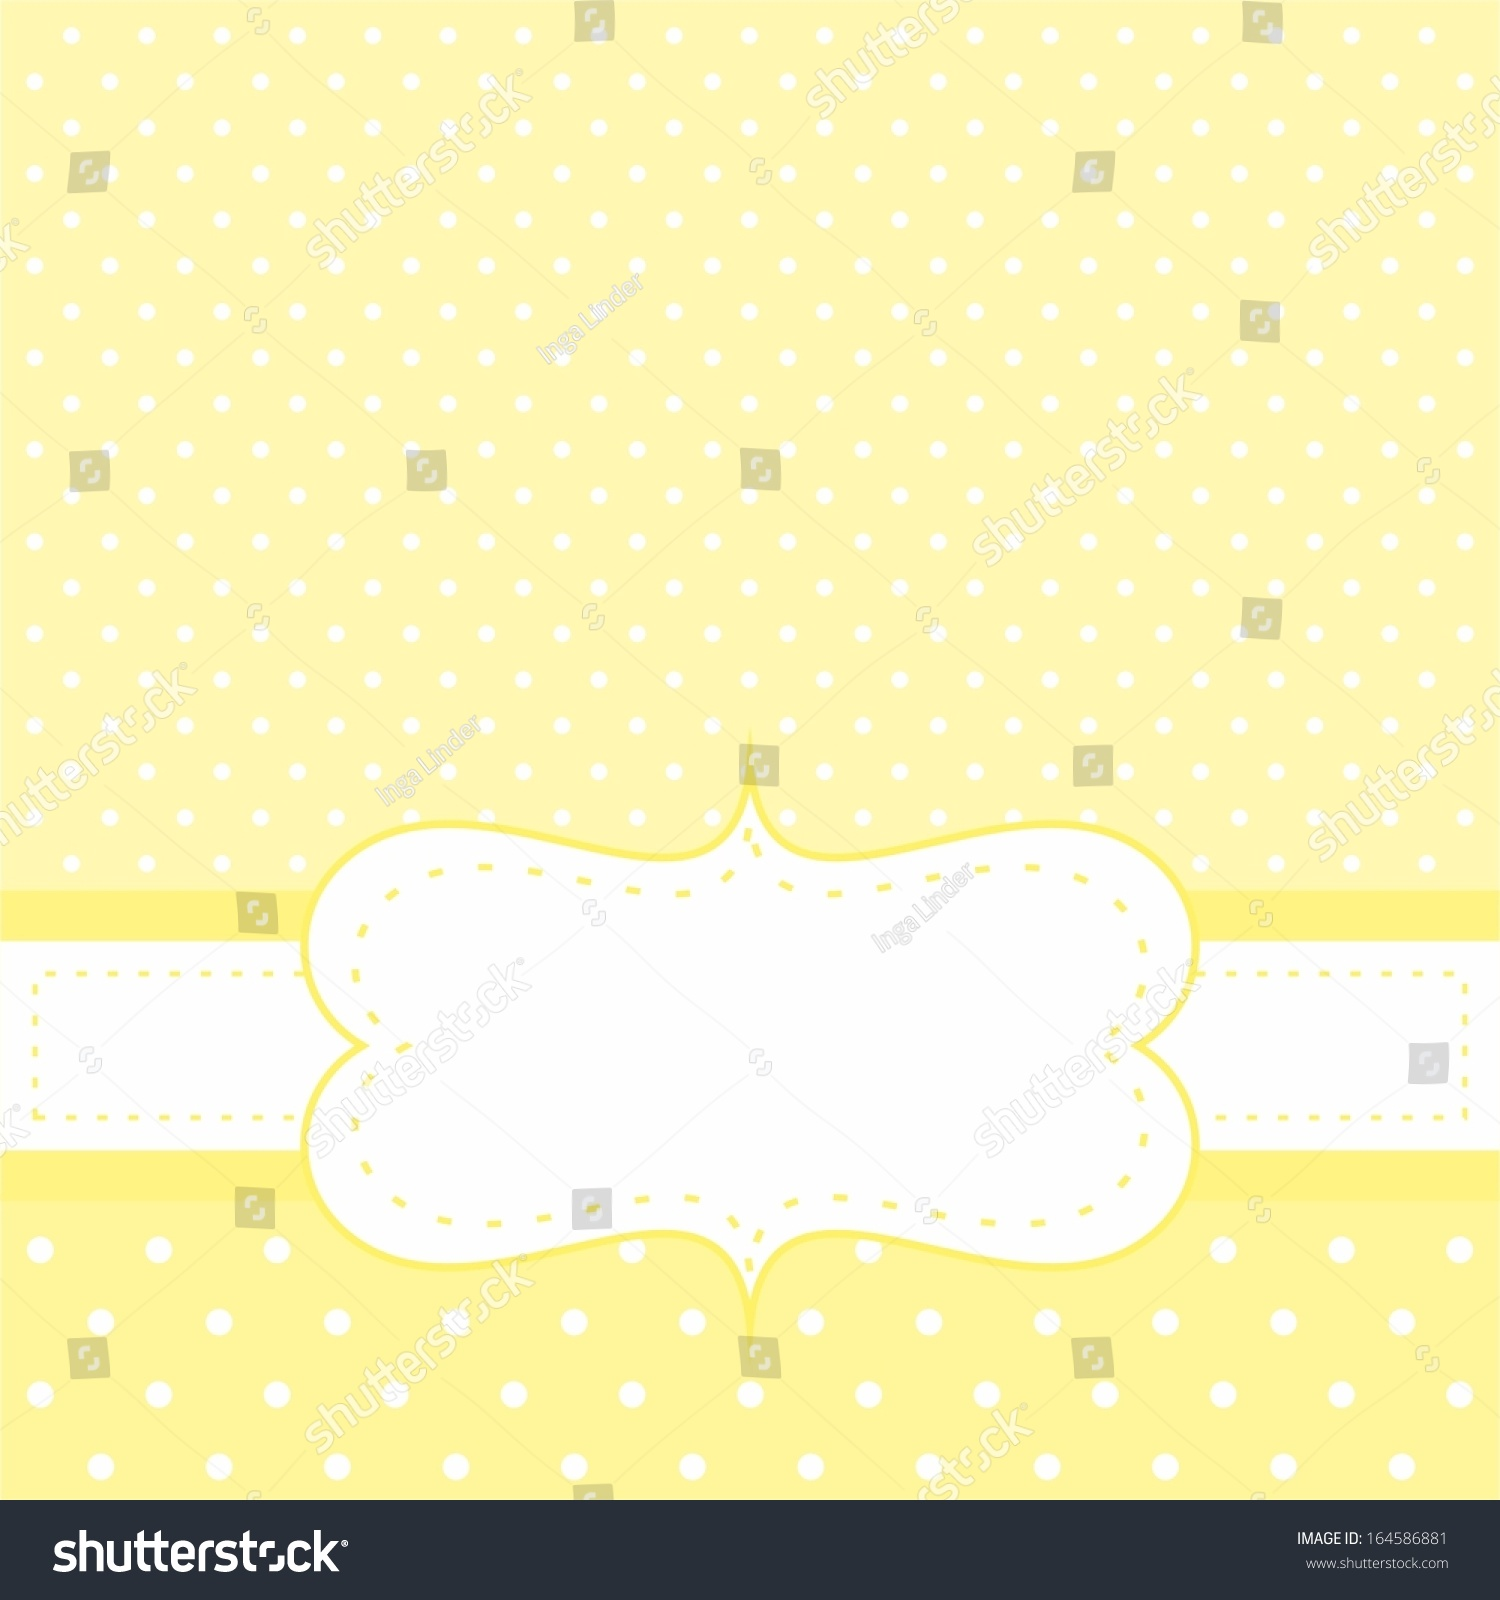 Sunny Vector Card Or Invitation With Yellow Background, White Polka Dots And White Space To Put ...